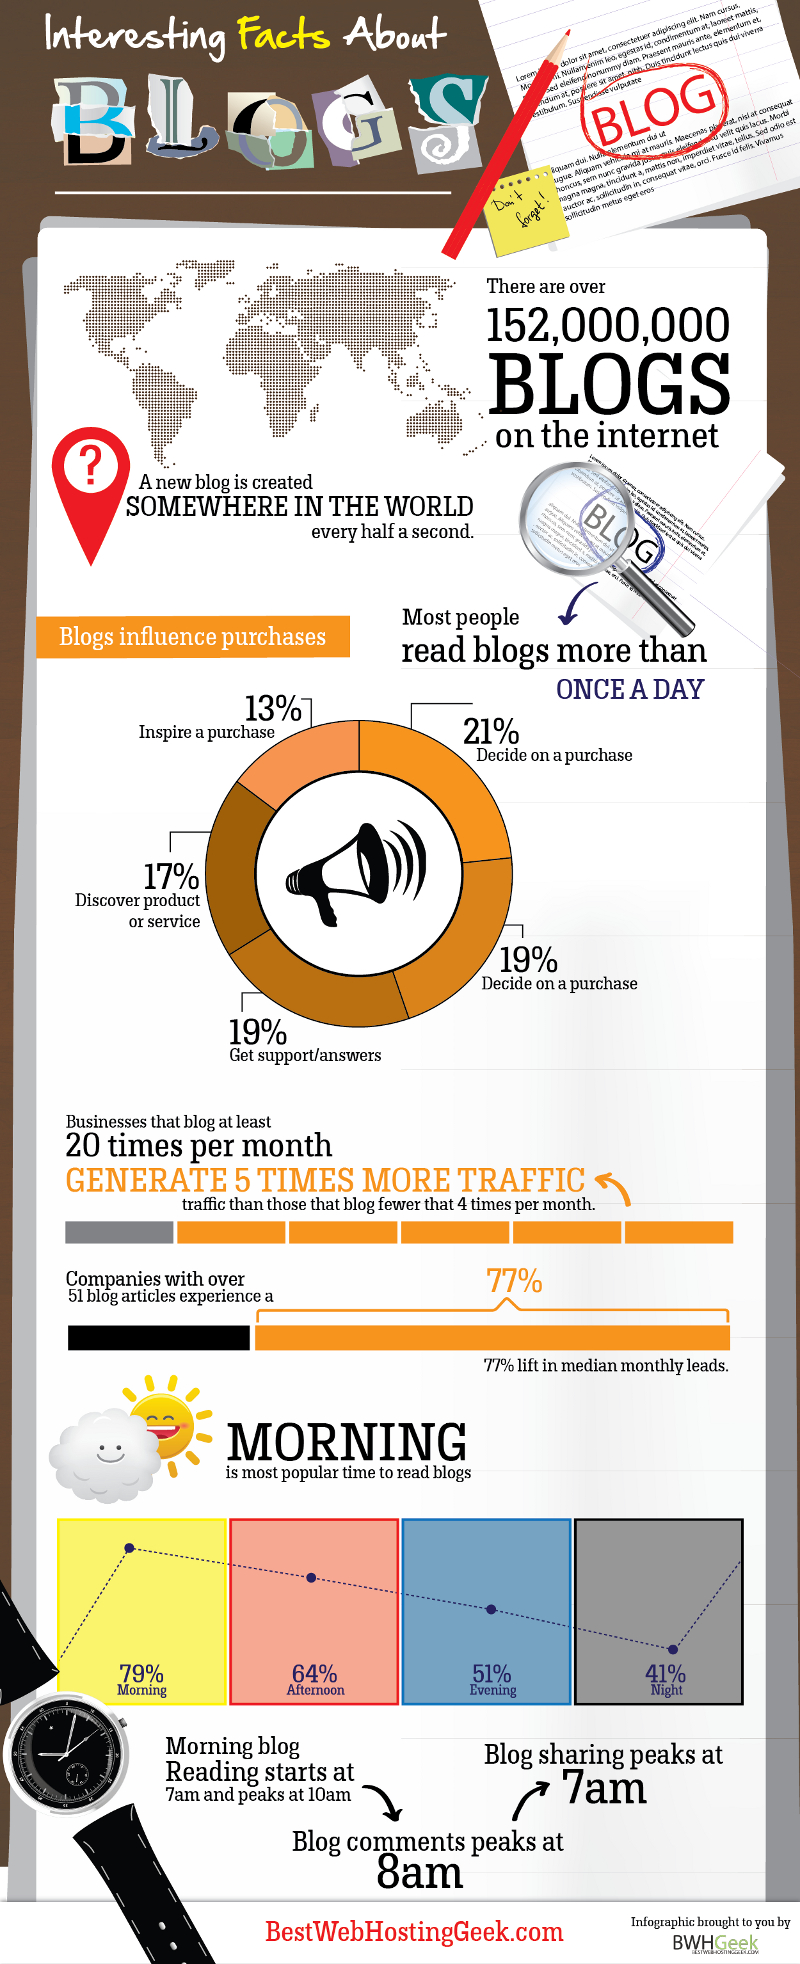 Interesting Facts About Blogging